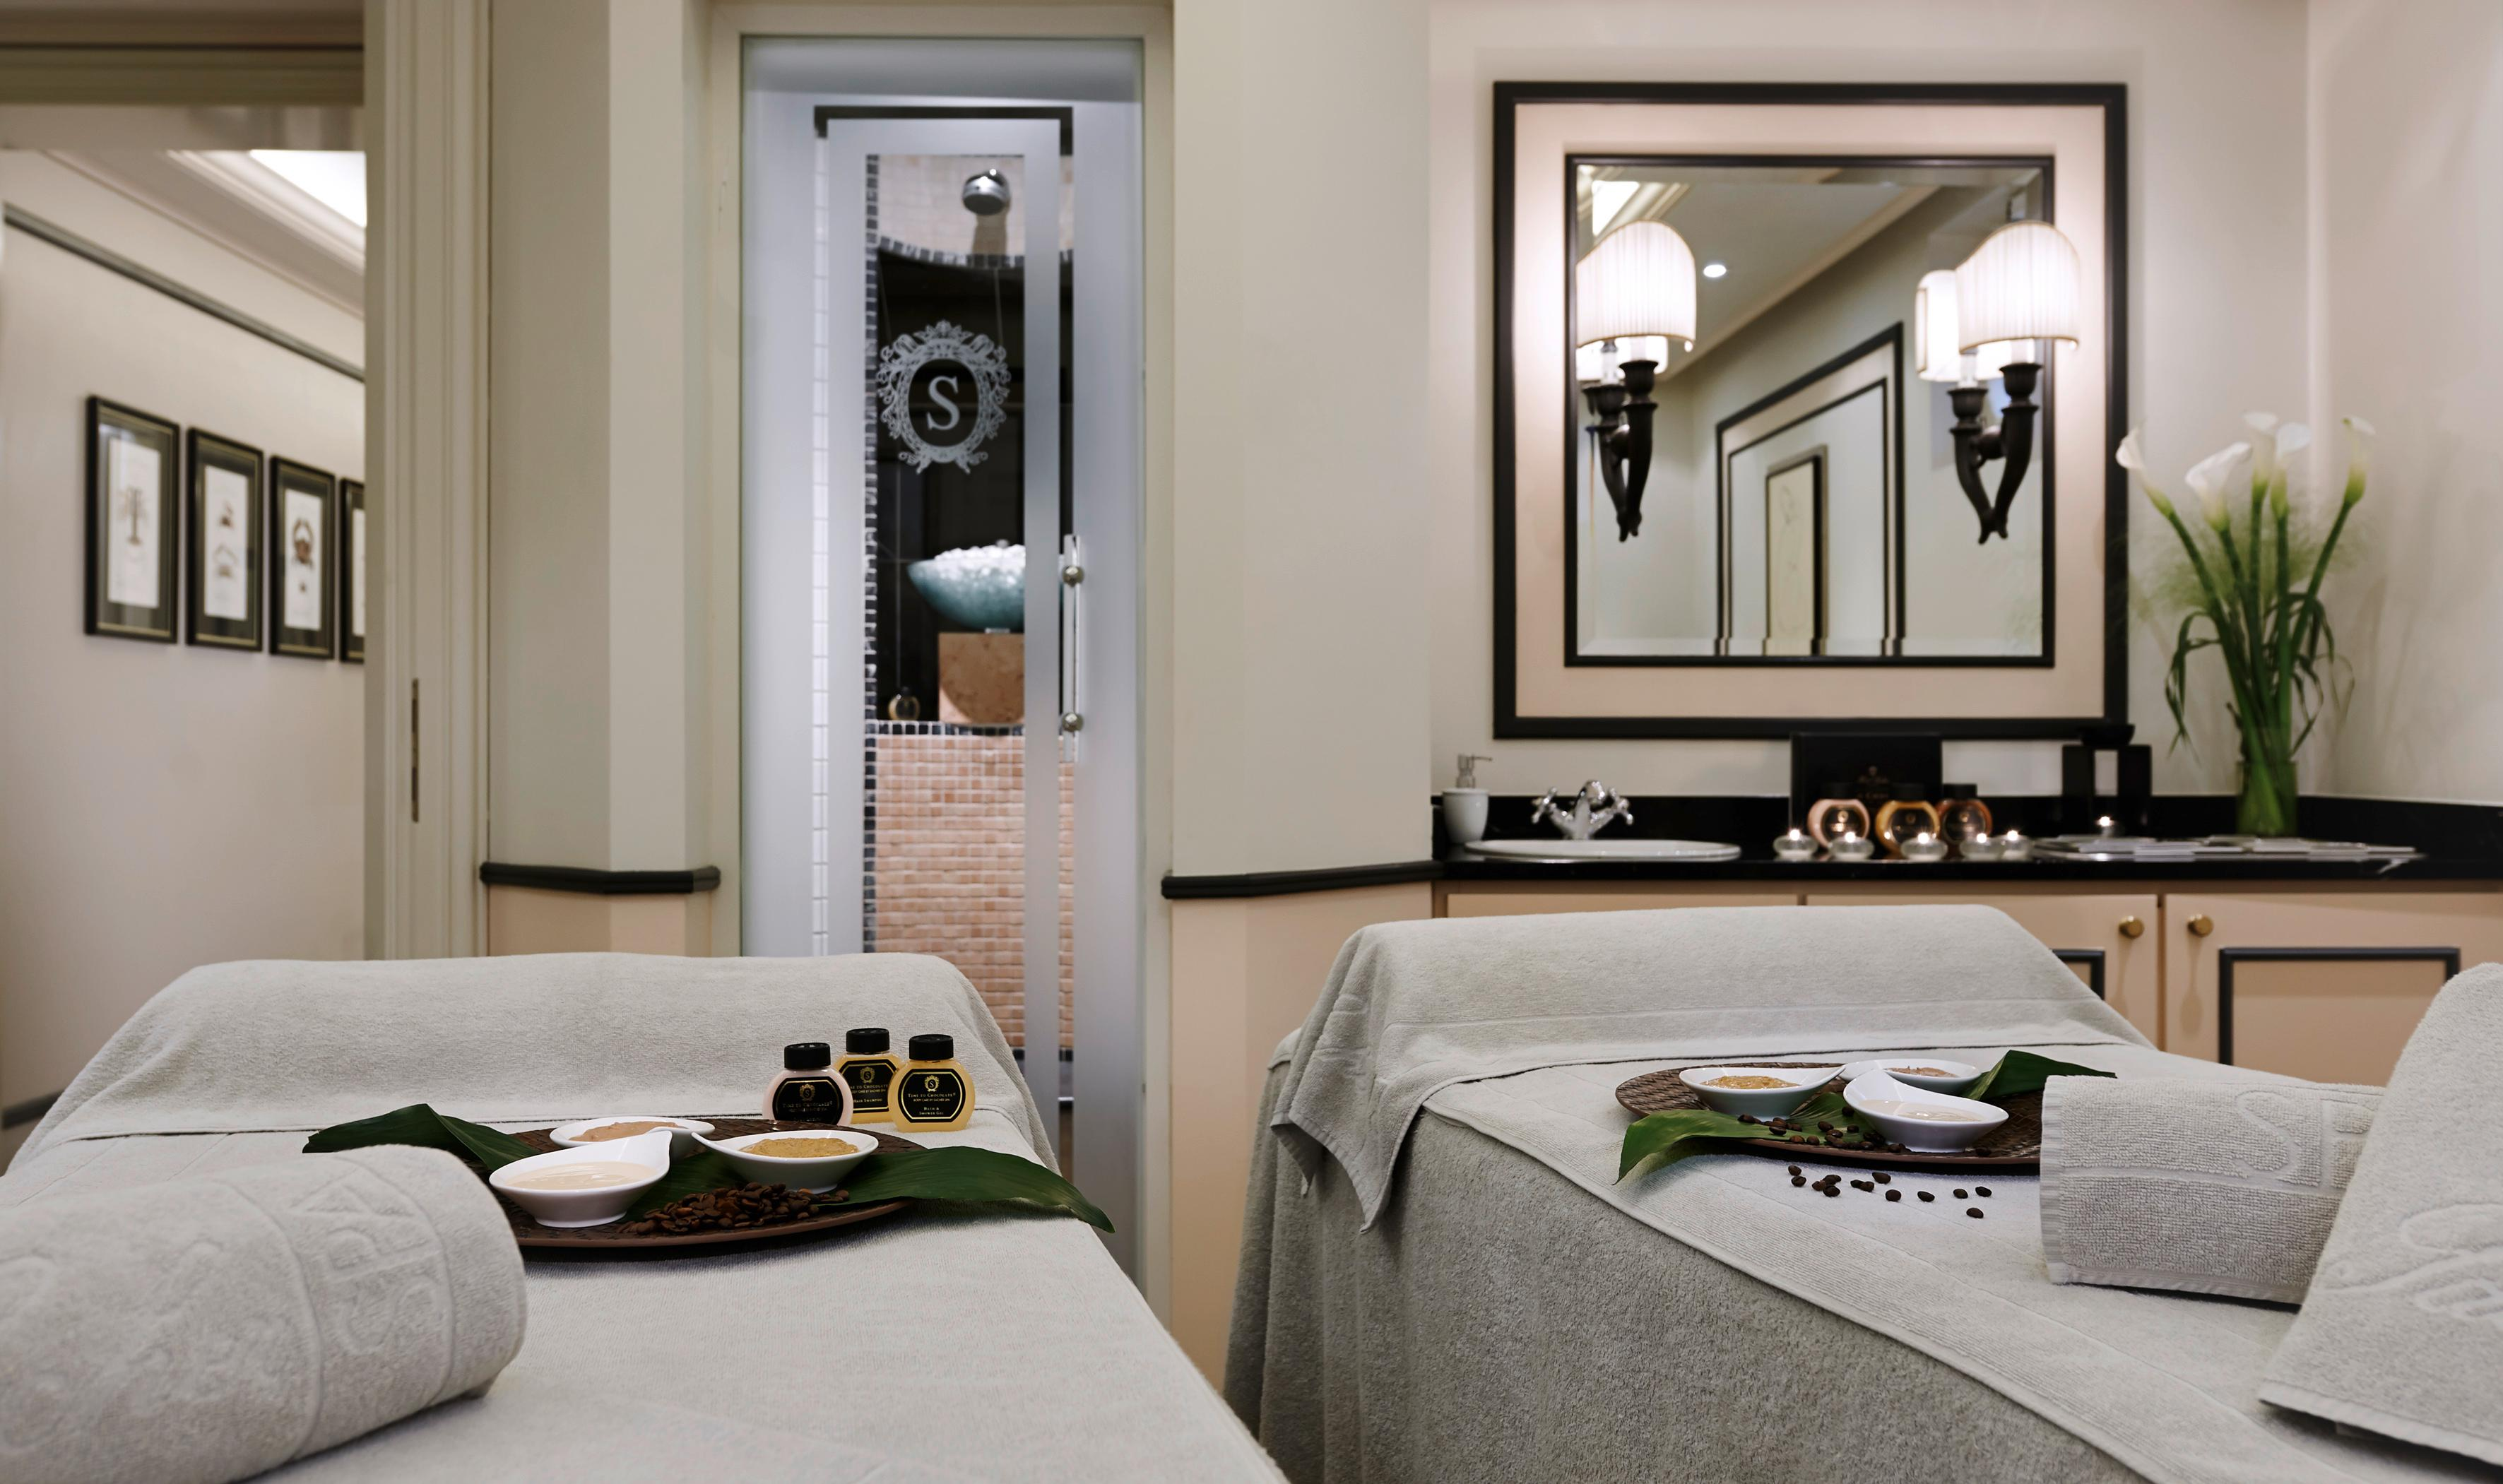 Treatment Suite at Sacher Boutique Spa